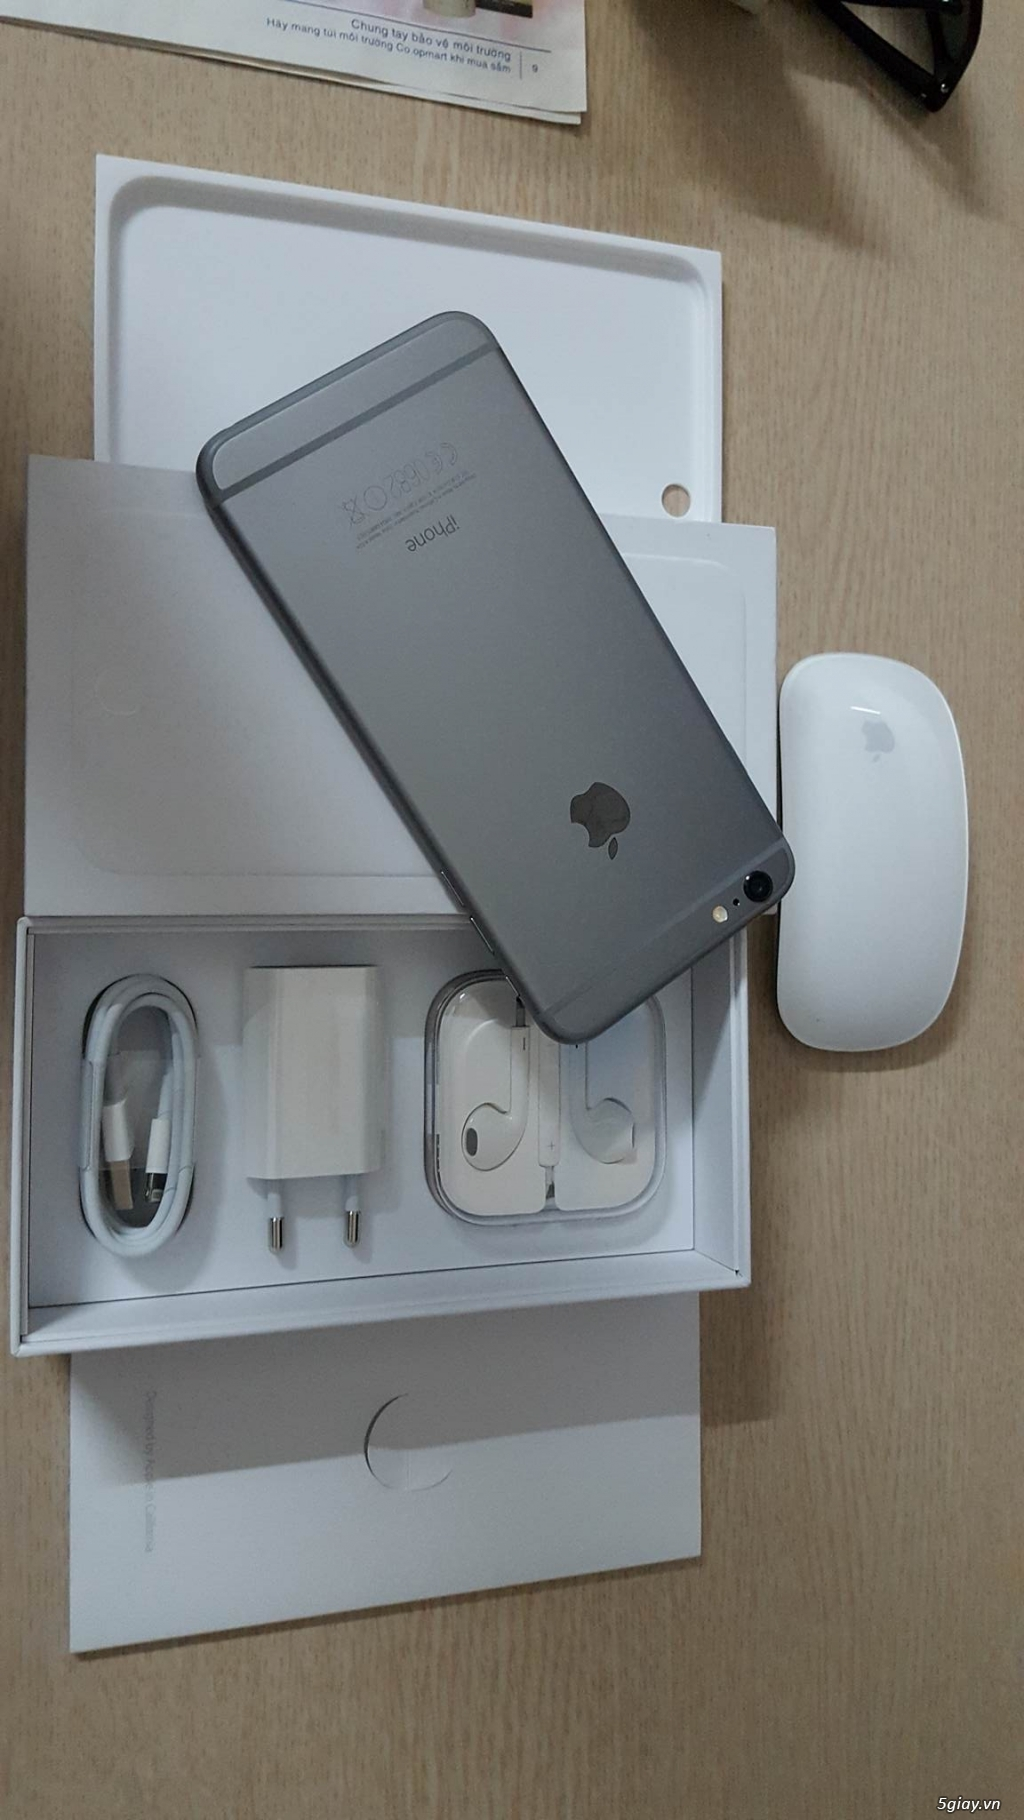 IPHONE 6PLUS 16GB GRAY QUỐC TẾ - 5